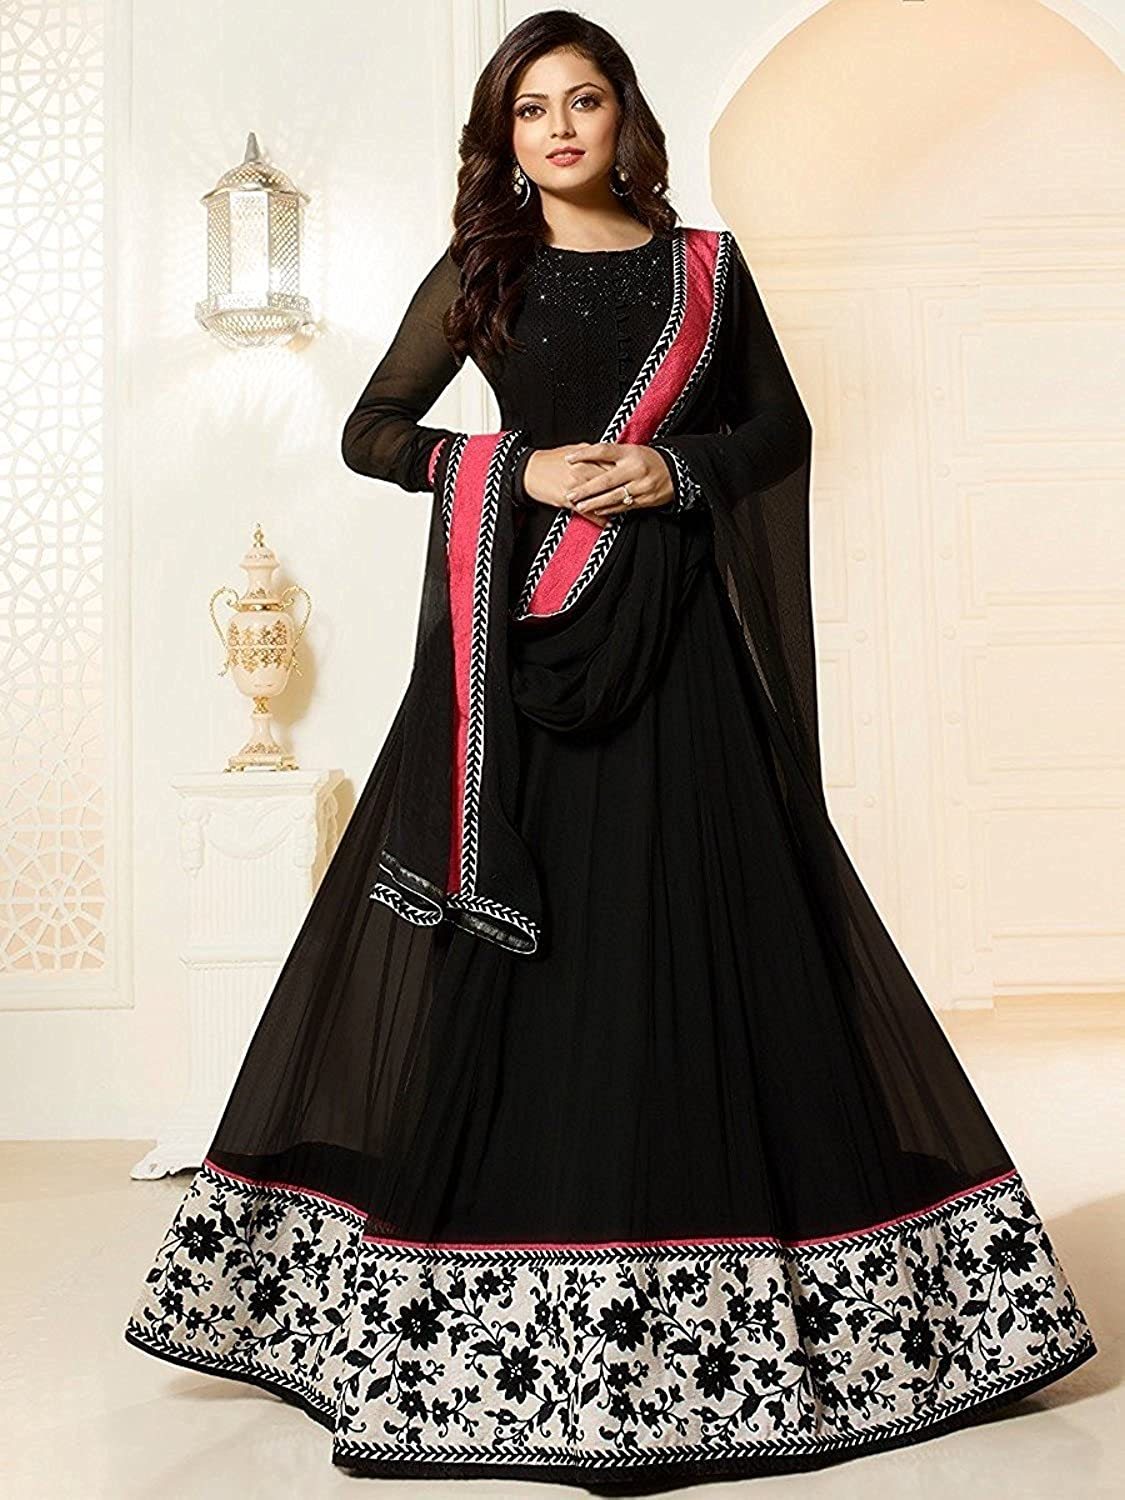 Women Gown For Girls 18 Years By Karm Enterprise At Best Price